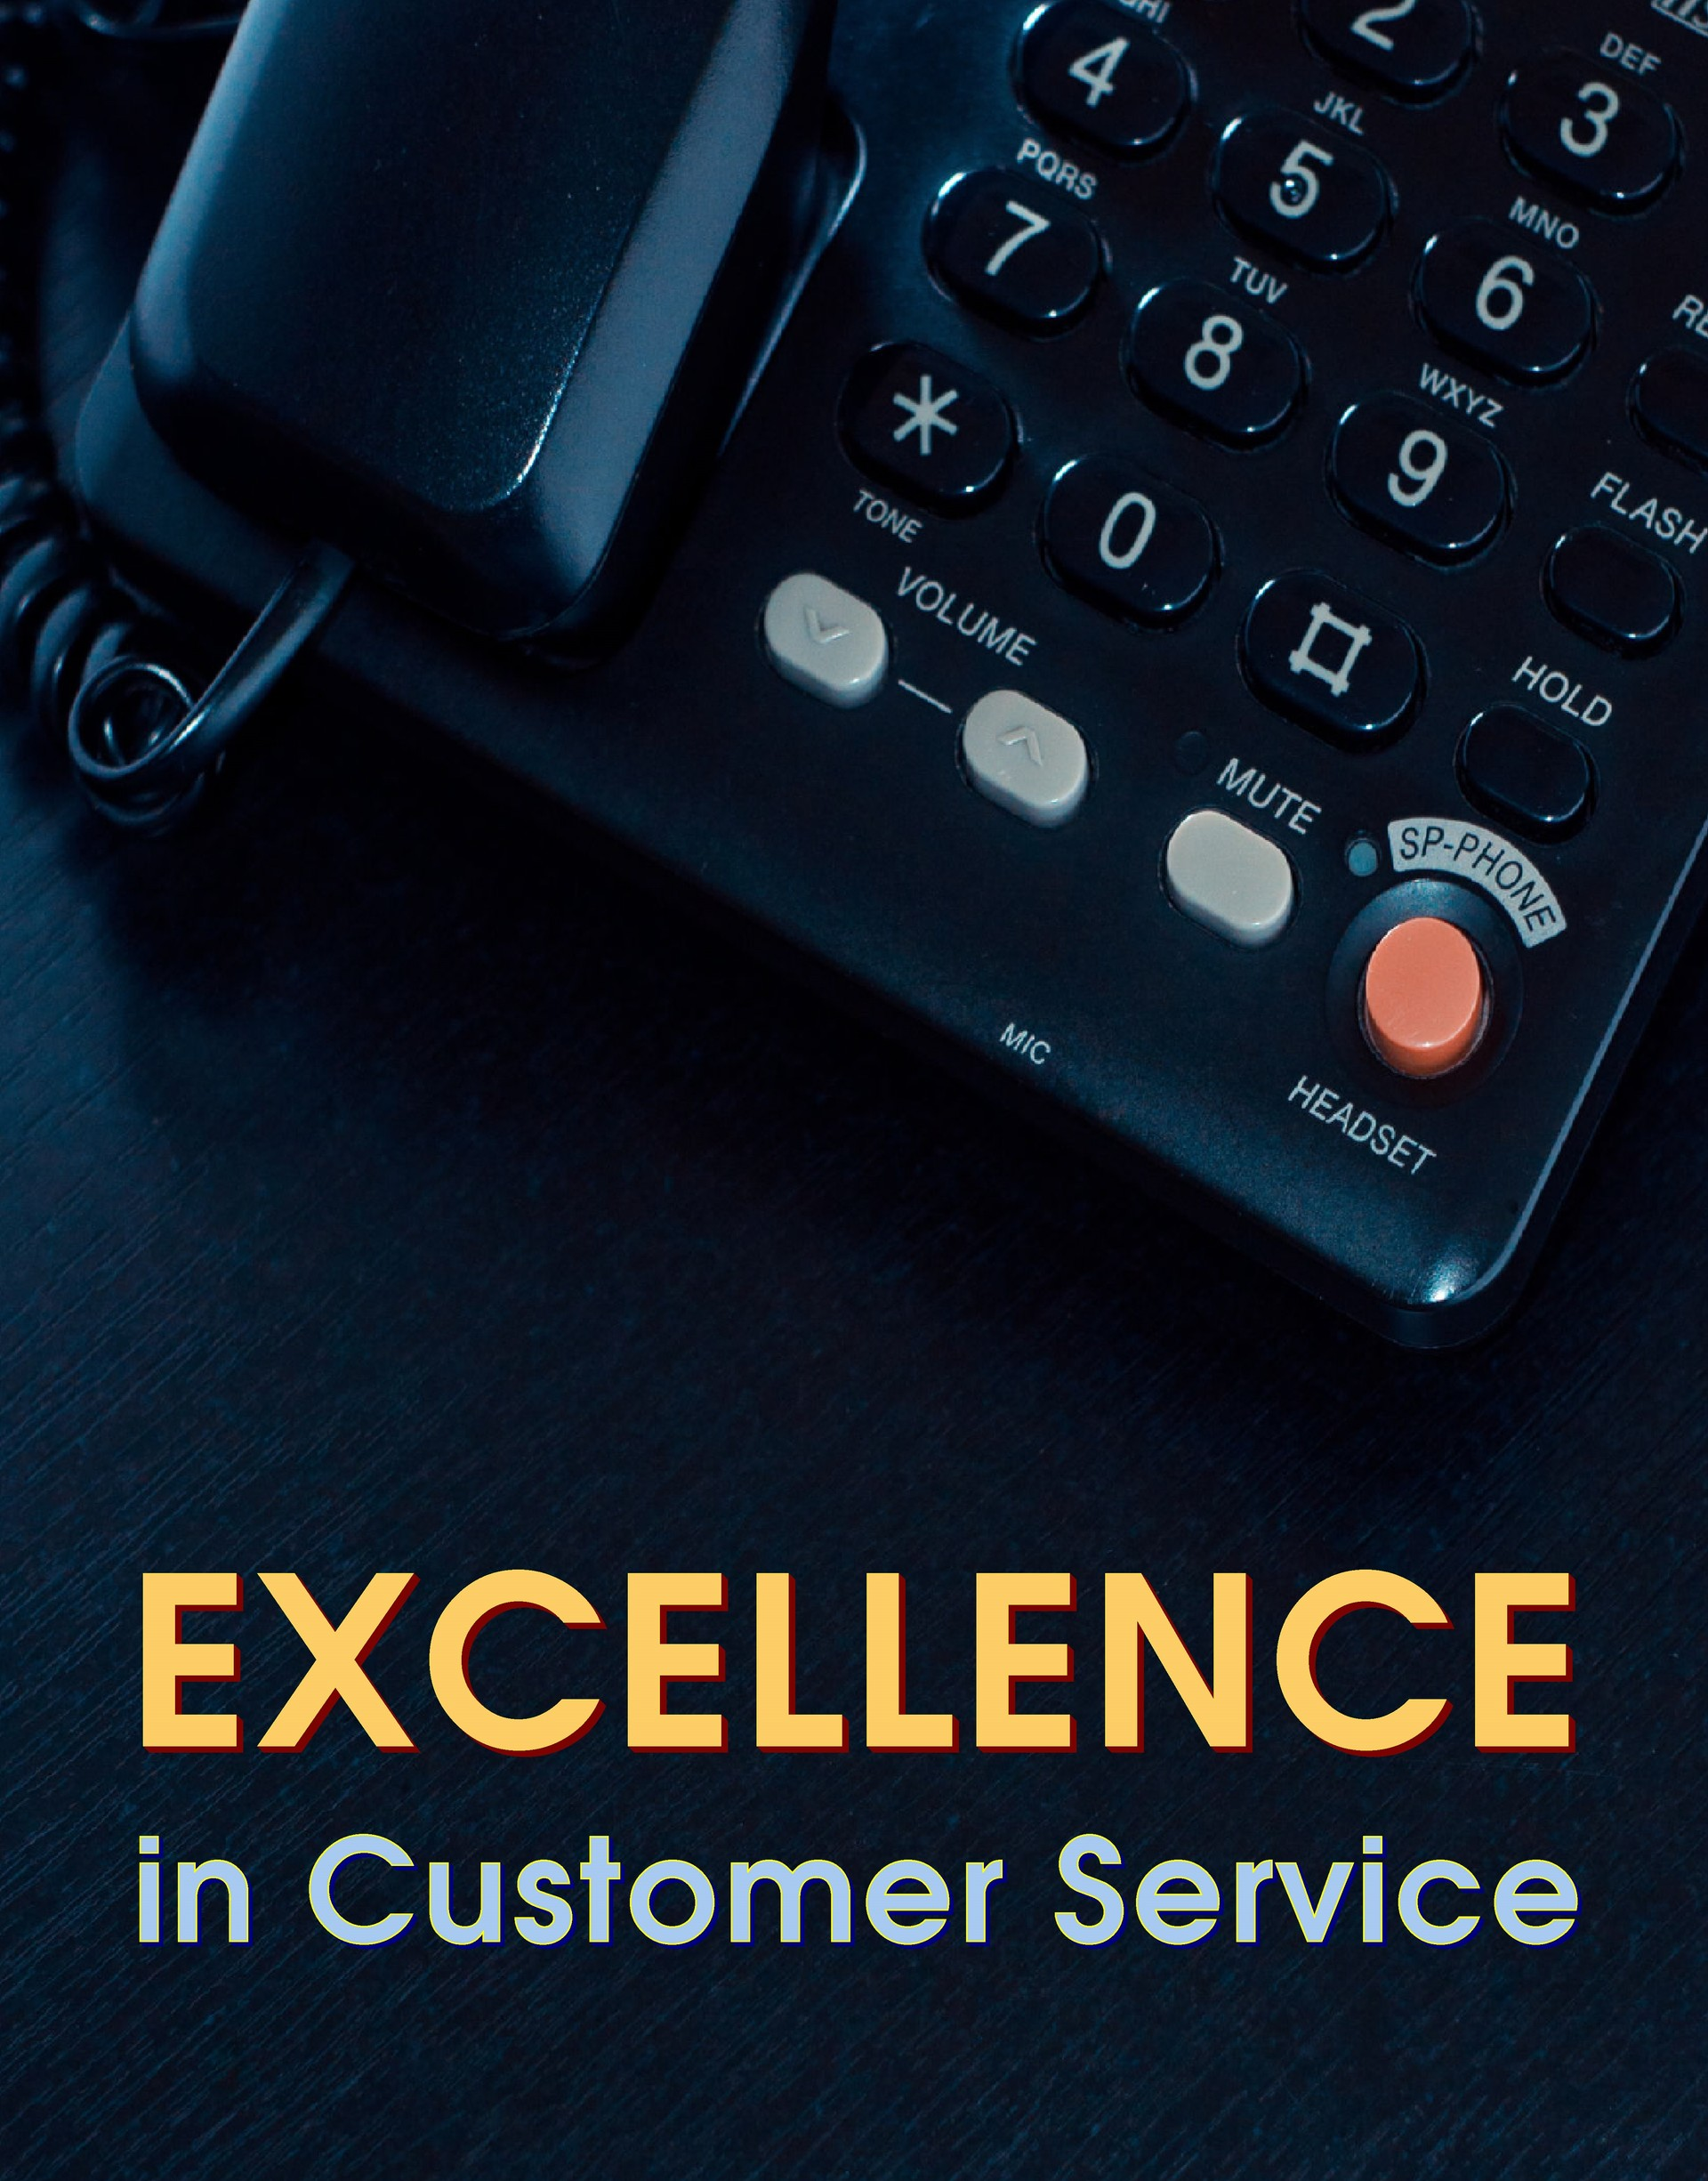 L7042 - Excellence in Customer Service